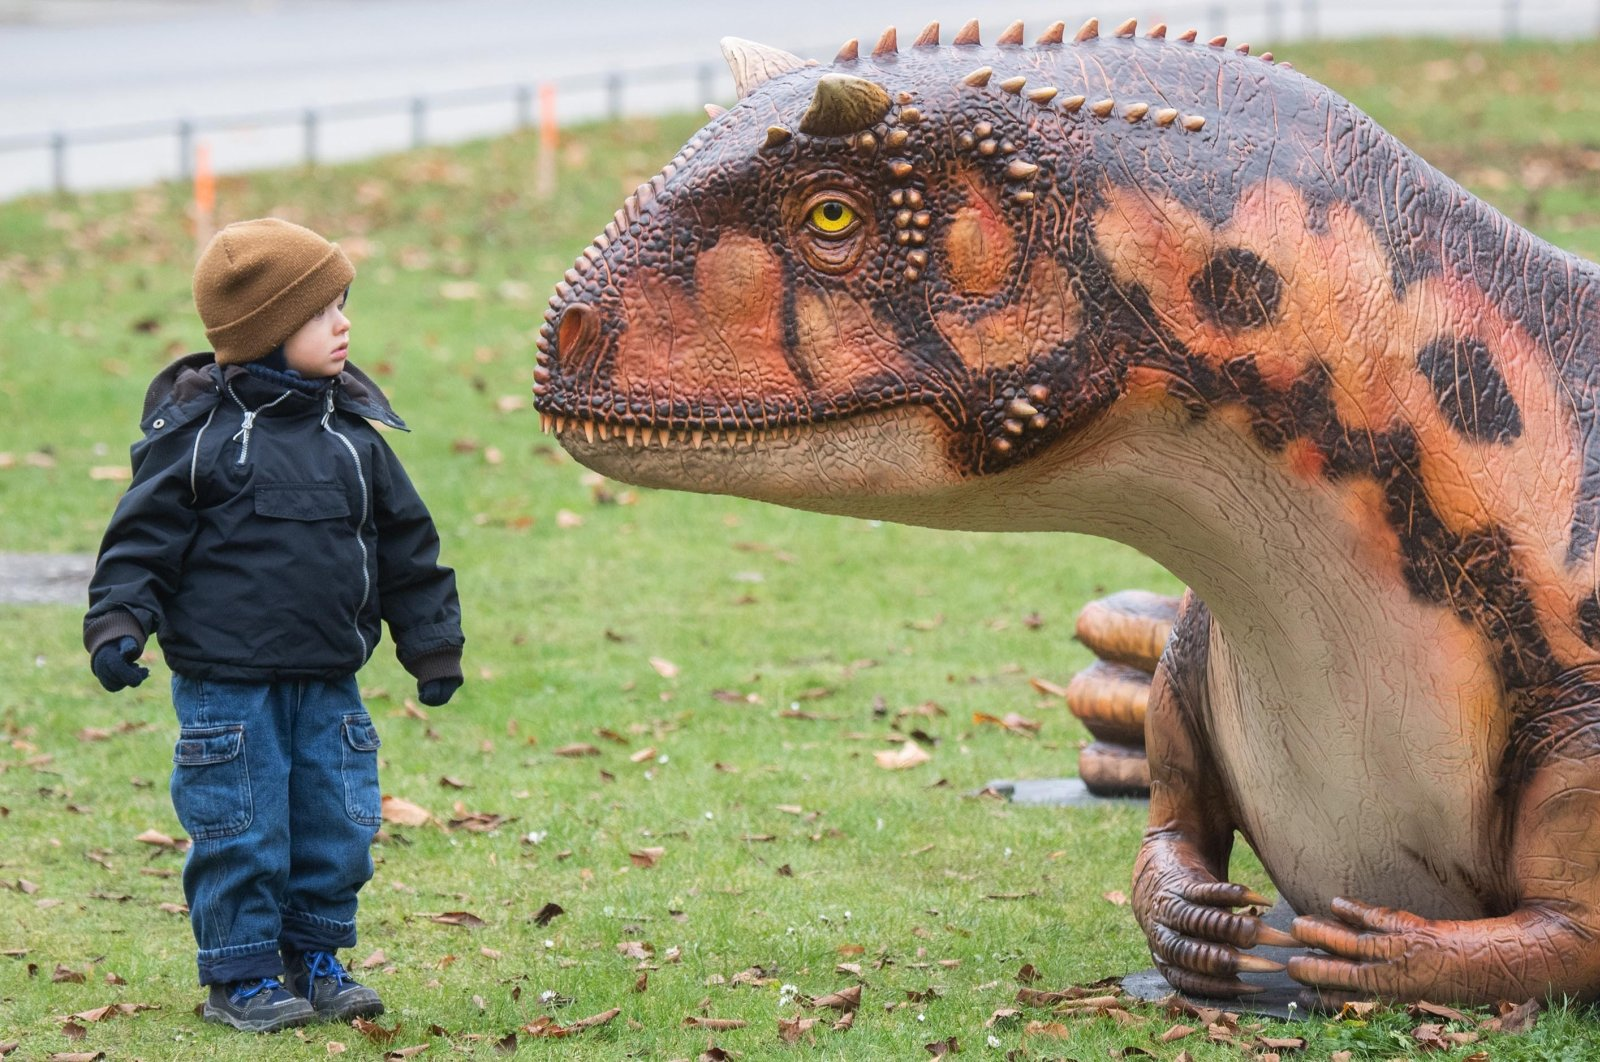 A two-year-old boy curiously looks at the model of a Carnotaurus in front of the Landesmuseum, in Lower Saxony, Hanover, Germany, Nov. 10, 2020. (Getty Images)